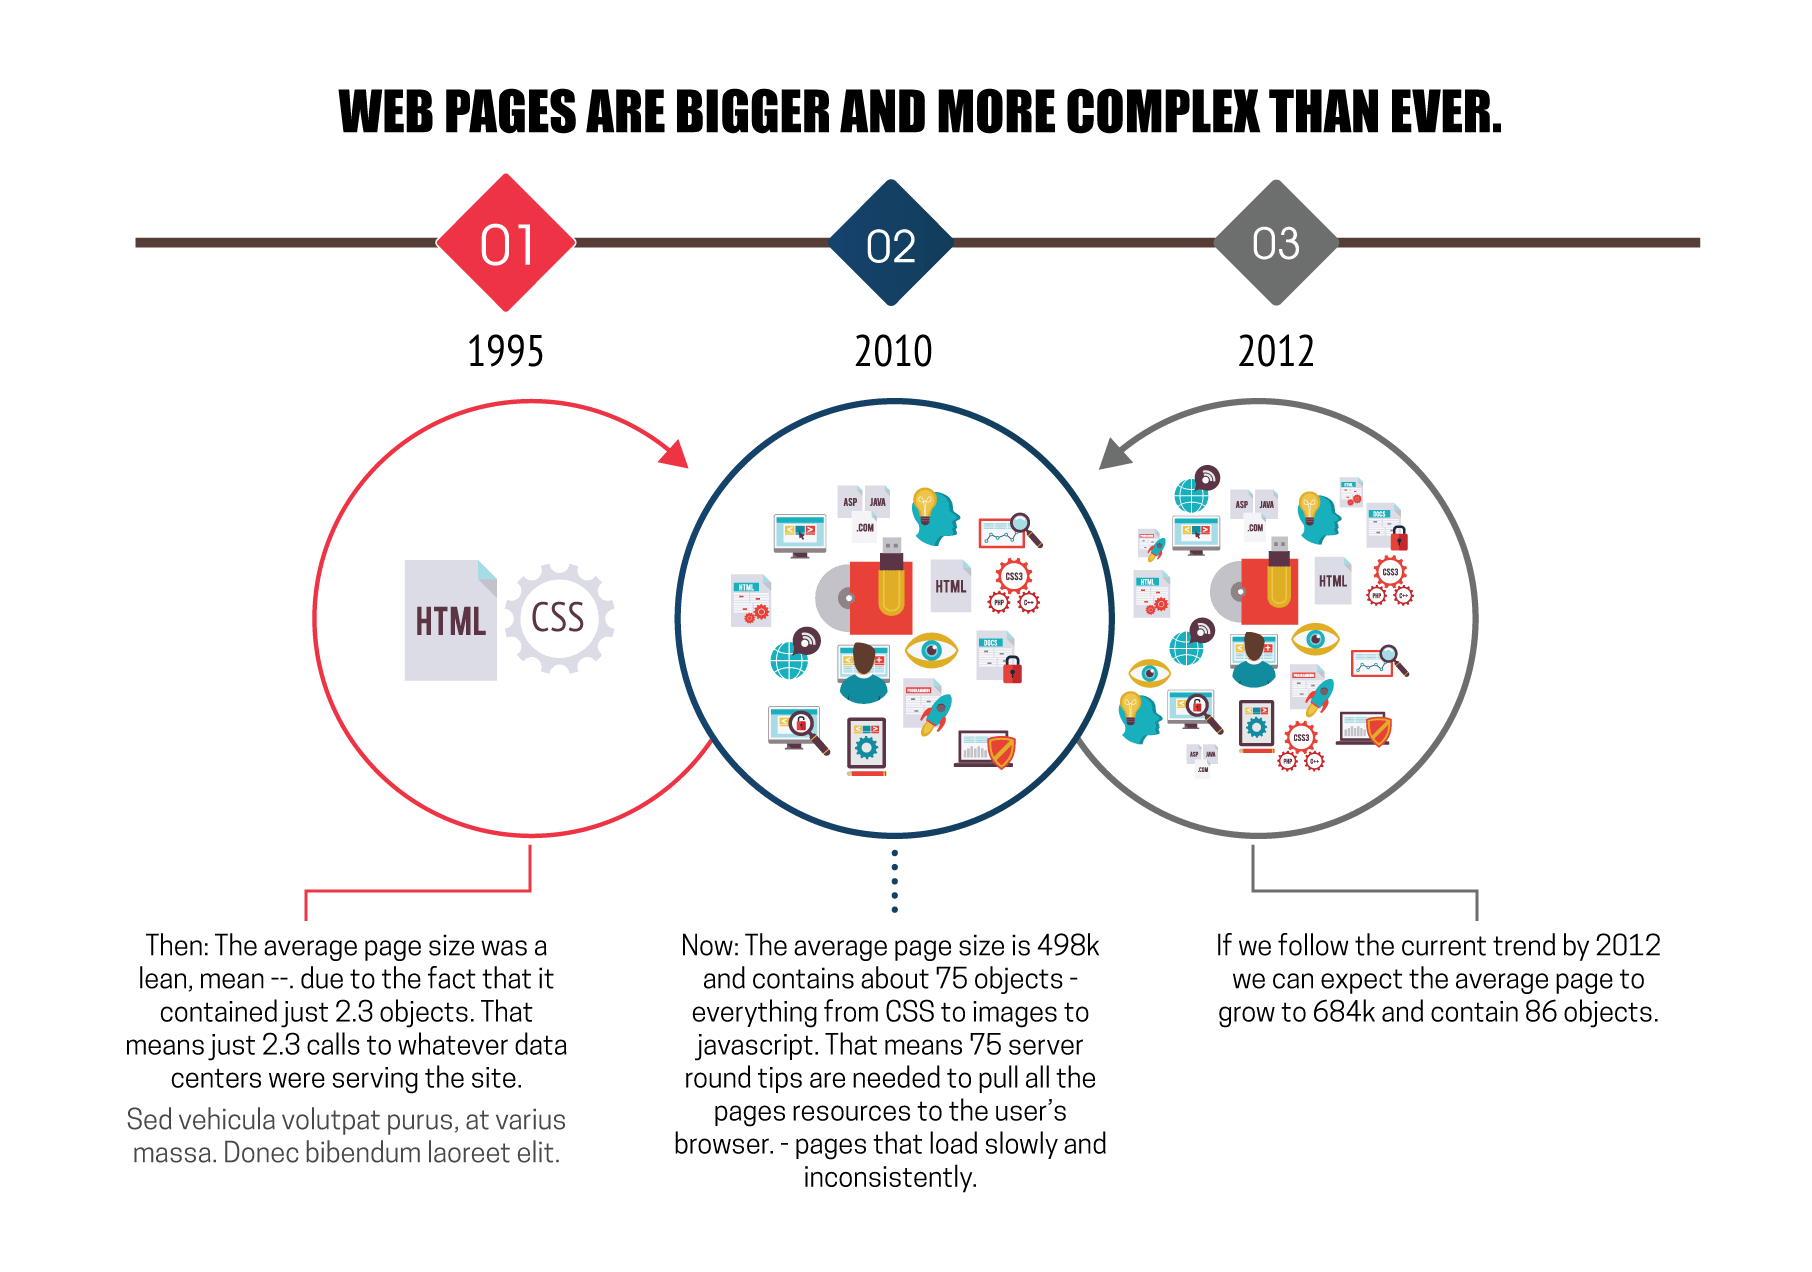 websites are more complex than ever